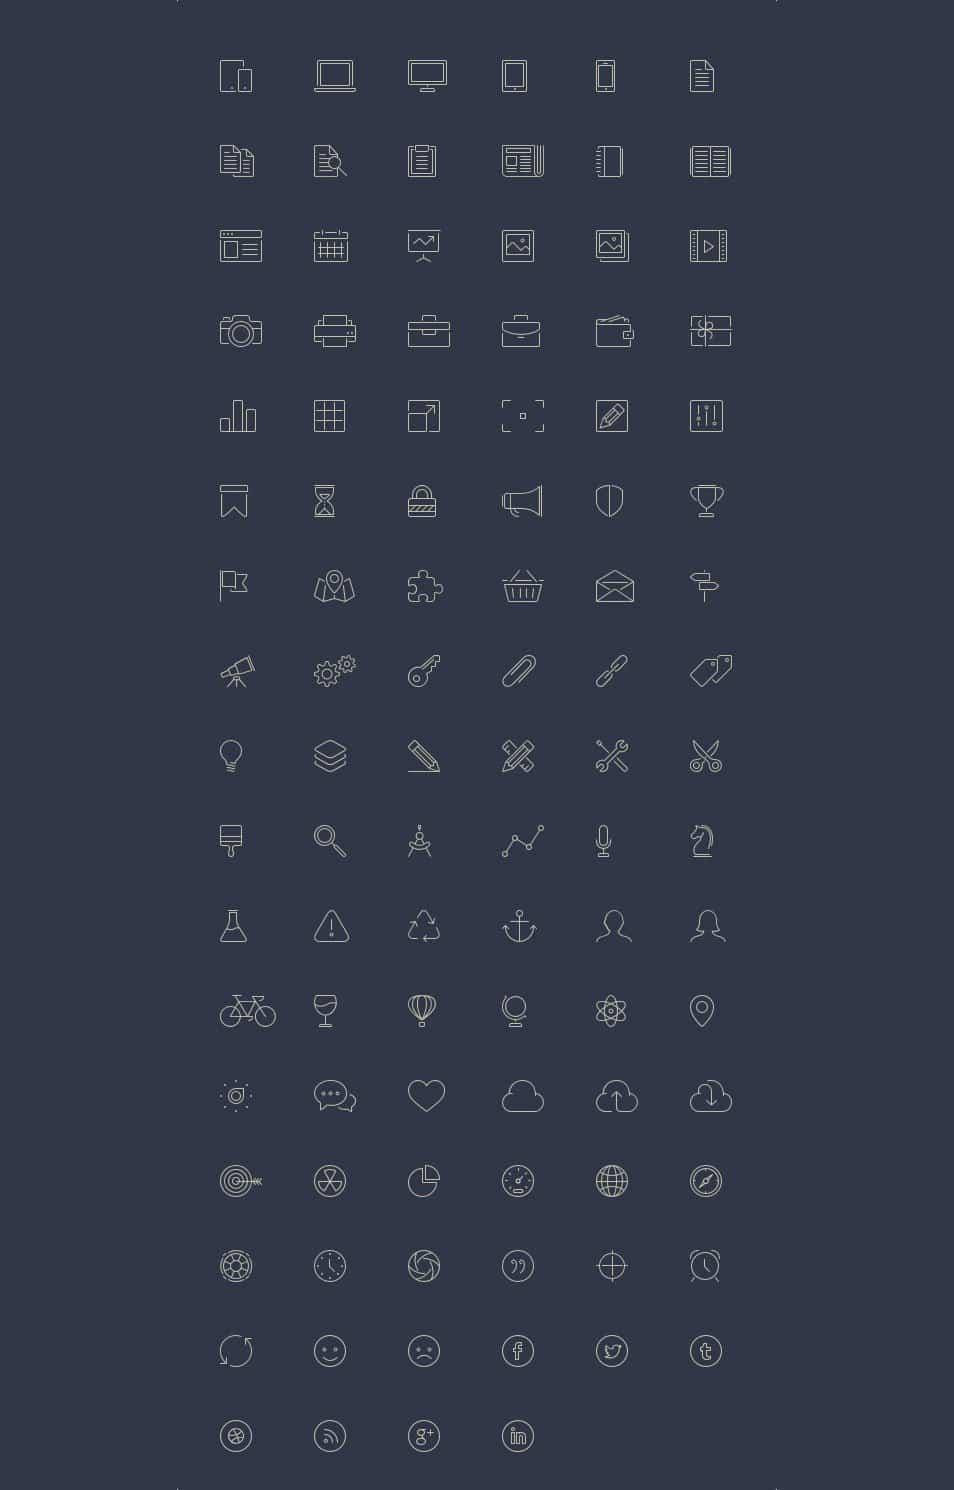 100 Free Line-Style Icons